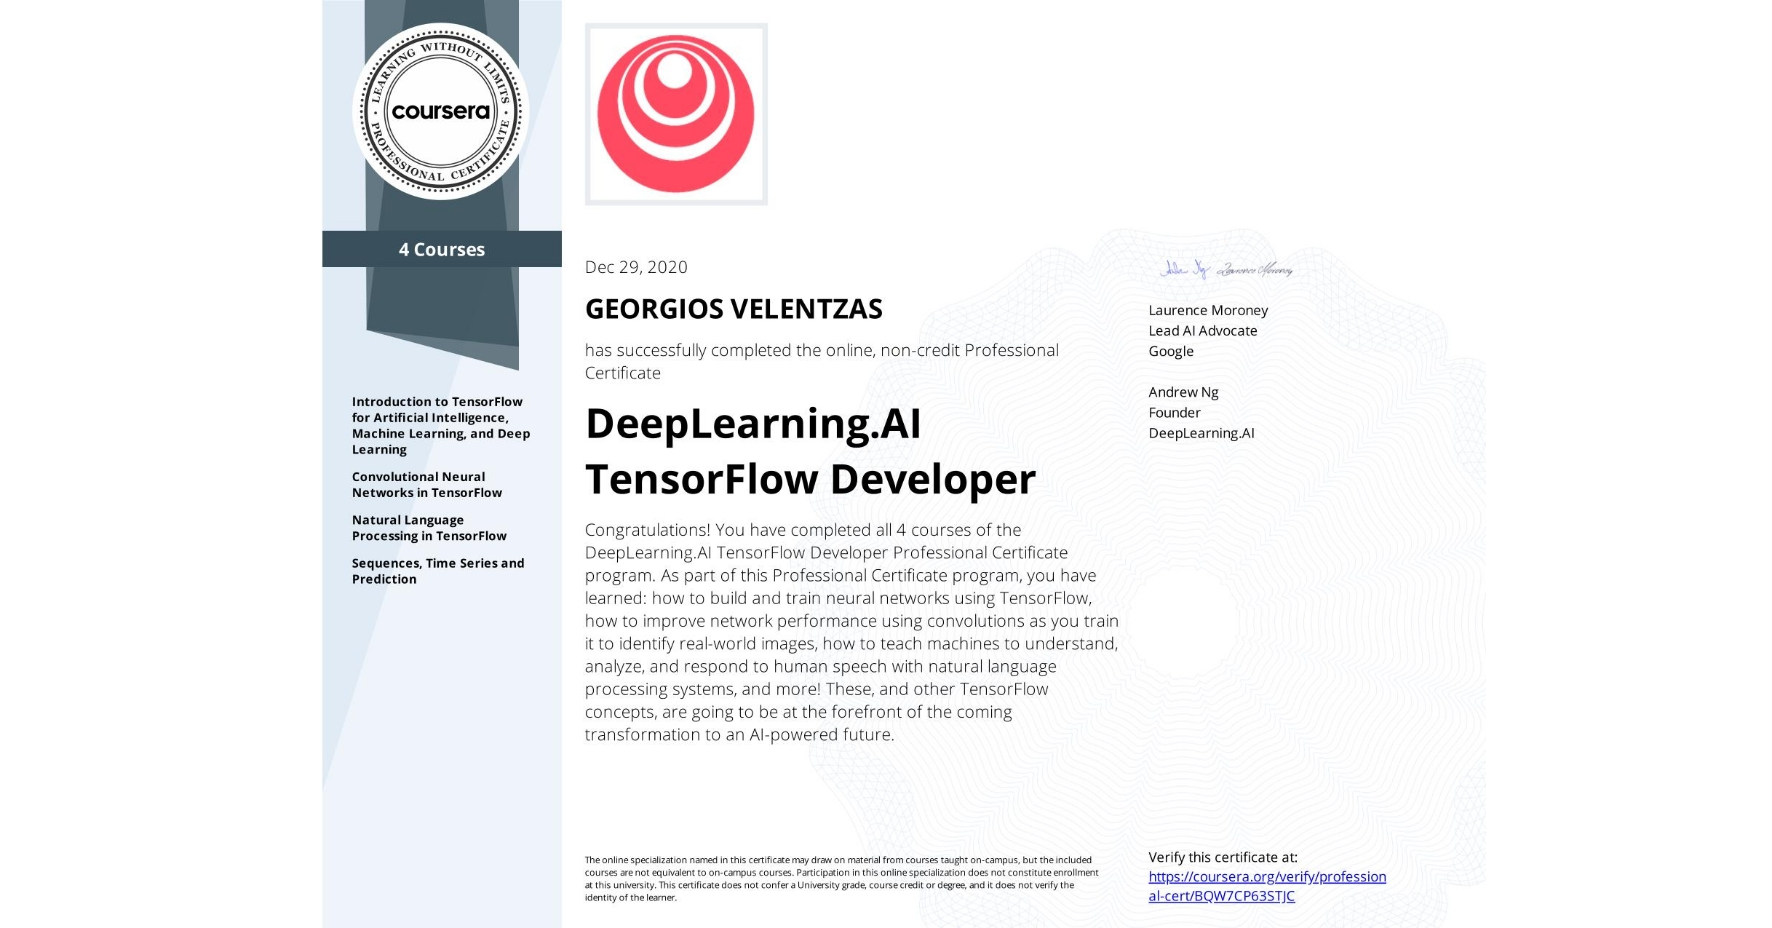 View certificate for GEORGIOS VELENTZAS, DeepLearning.AI TensorFlow Developer, offered through Coursera. Congratulations! You have completed all 4 courses of the DeepLearning.AI TensorFlow Developer Professional Certificate program.   As part of this Professional Certificate program, you have learned: how to build and train neural networks using TensorFlow, how to improve network performance using convolutions as you train it to identify real-world images, how to teach machines to understand, analyze, and respond to human speech with natural language processing systems, and more!  These, and other TensorFlow concepts, are going to be at the forefront of the coming transformation to an AI-powered future.